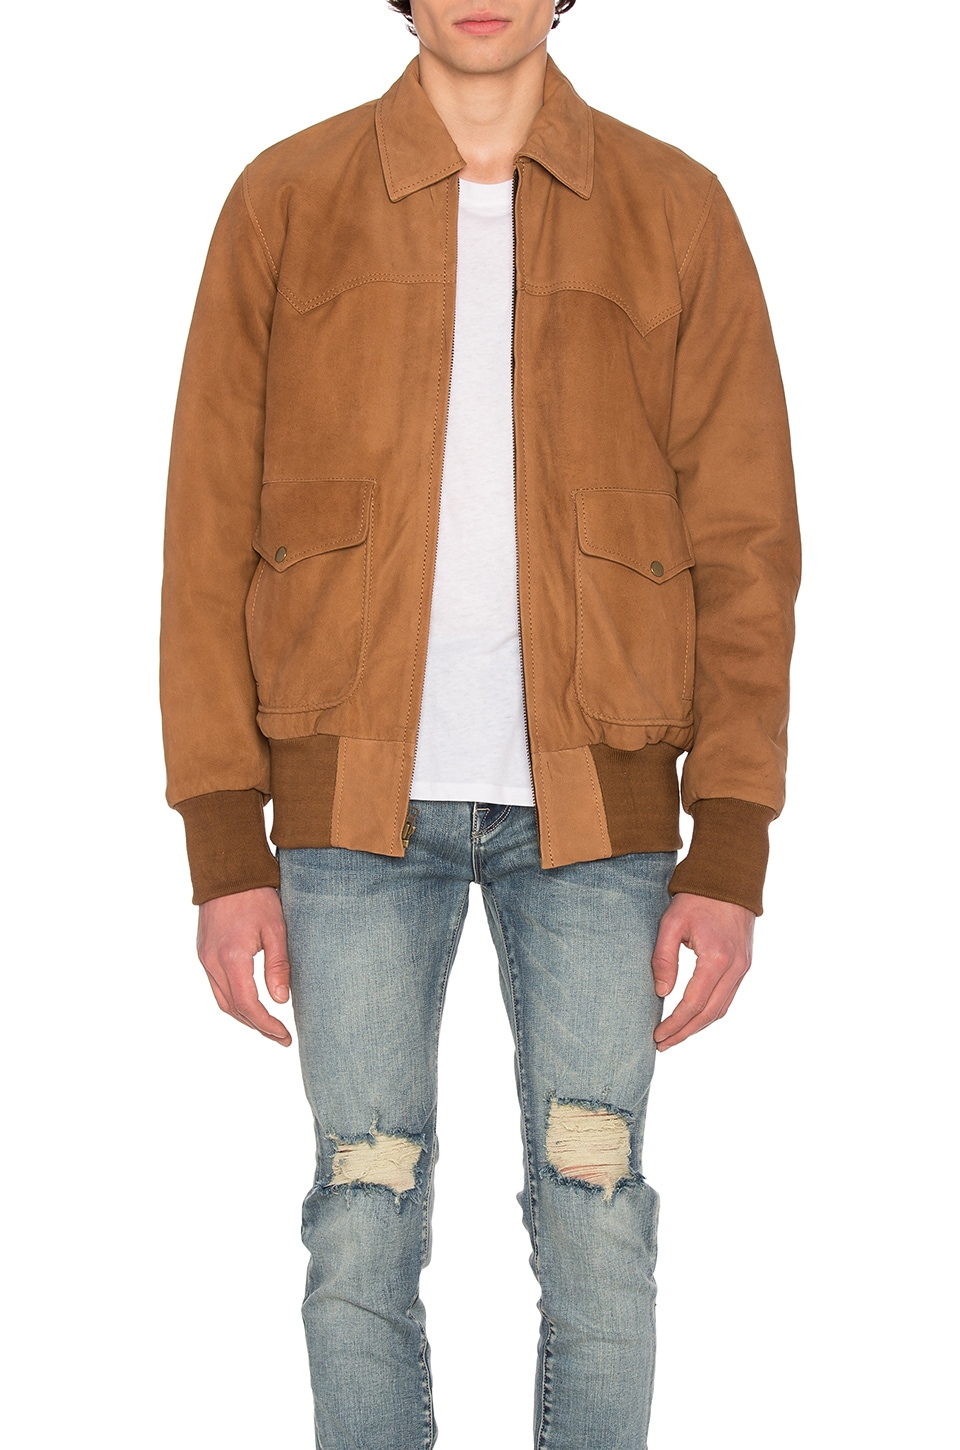 x REVOLVE Nubuck Flight Jacket by Understated Leather